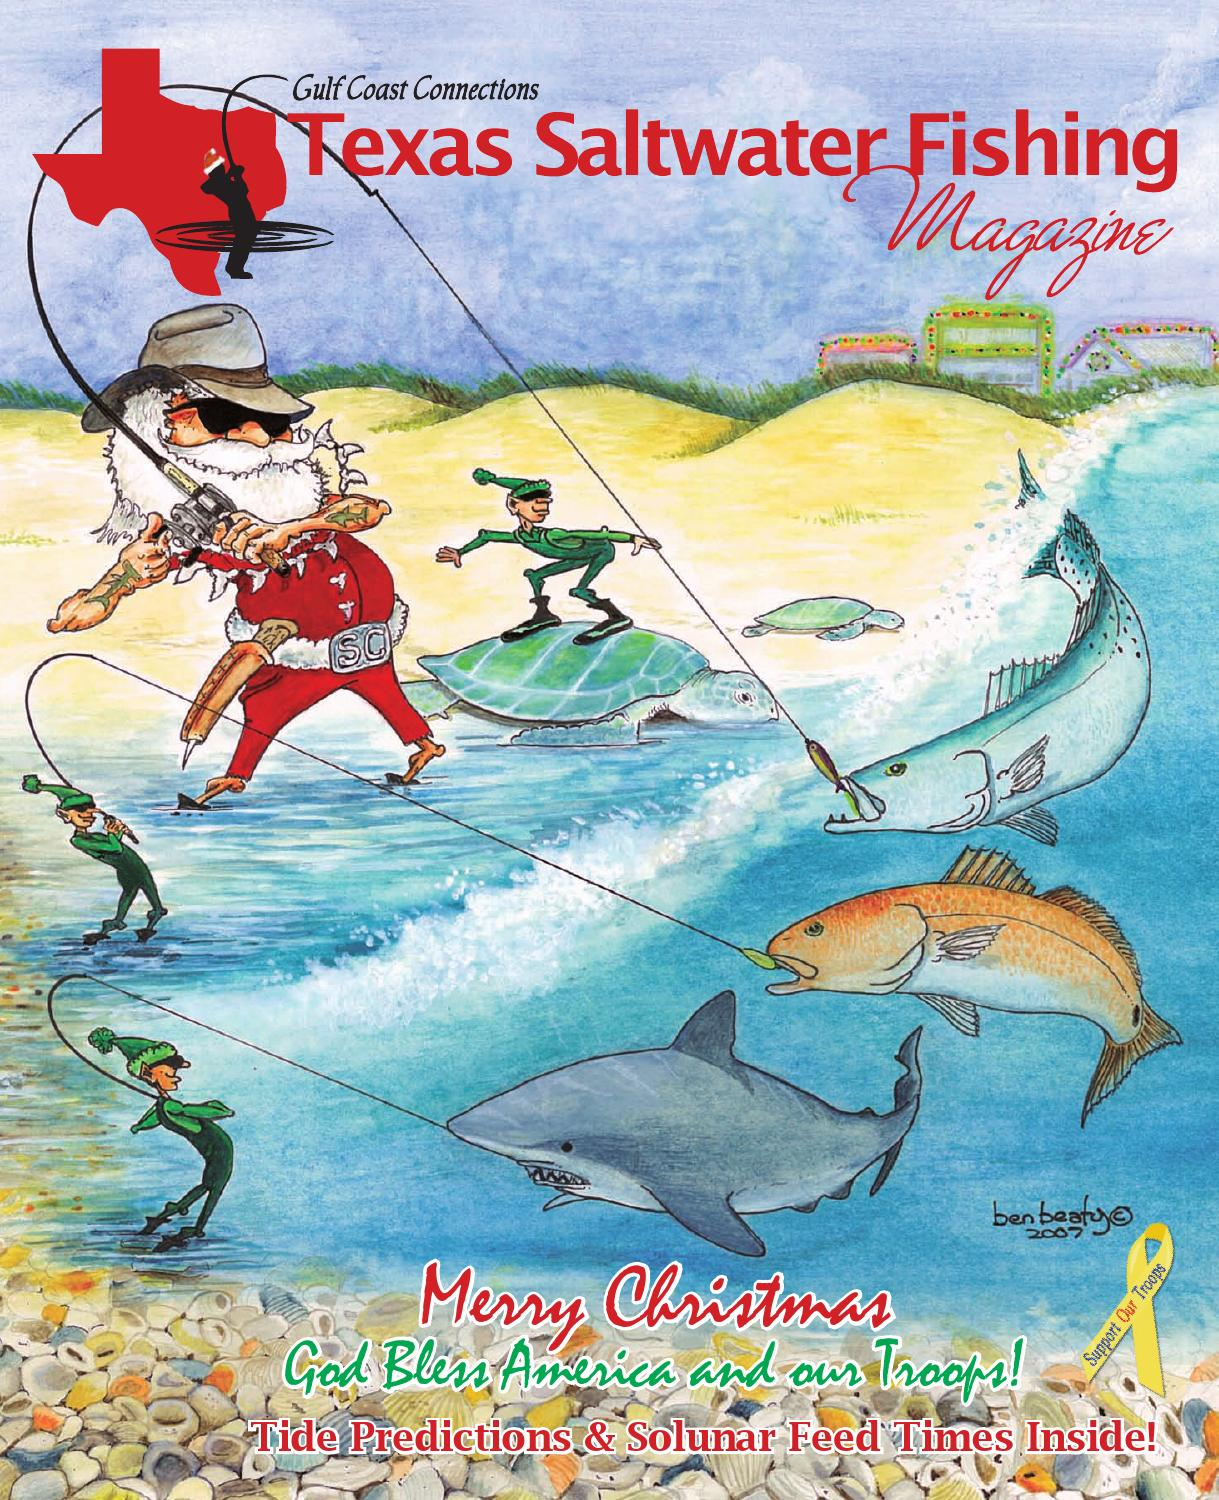 December 2007 by texas salwater fishing magazine issuu for Texas saltwater fishing magazine